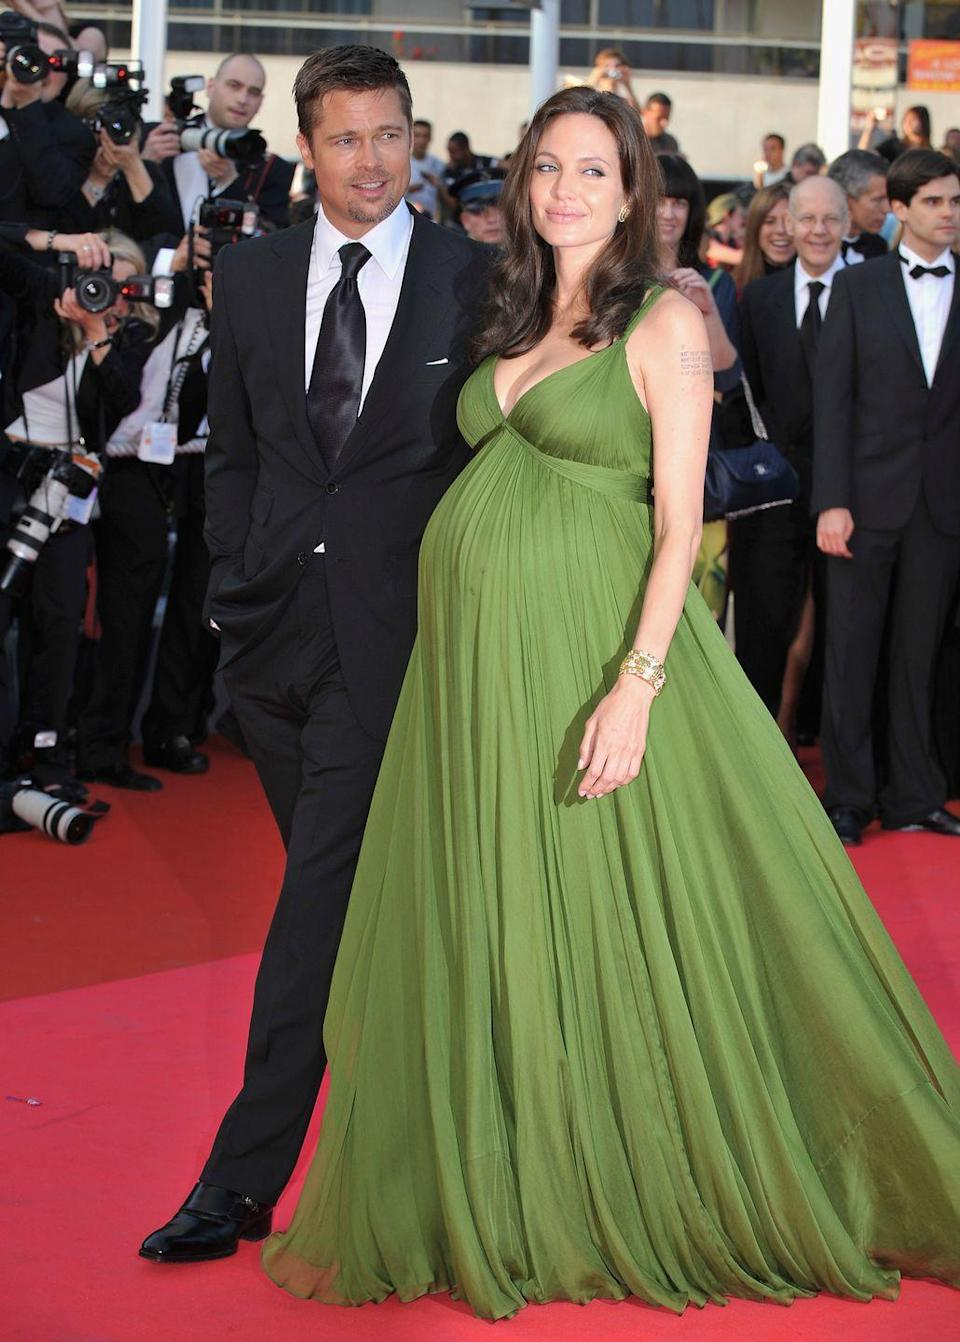 <p>At the 61st International Cannes Film Festival, the couple announced that they were expecting twins. Knox Leon and Vivienne Marcheline were born in July. The couple also share three adopted children, meaning the twins rounded out the family to eight people in total.</p>